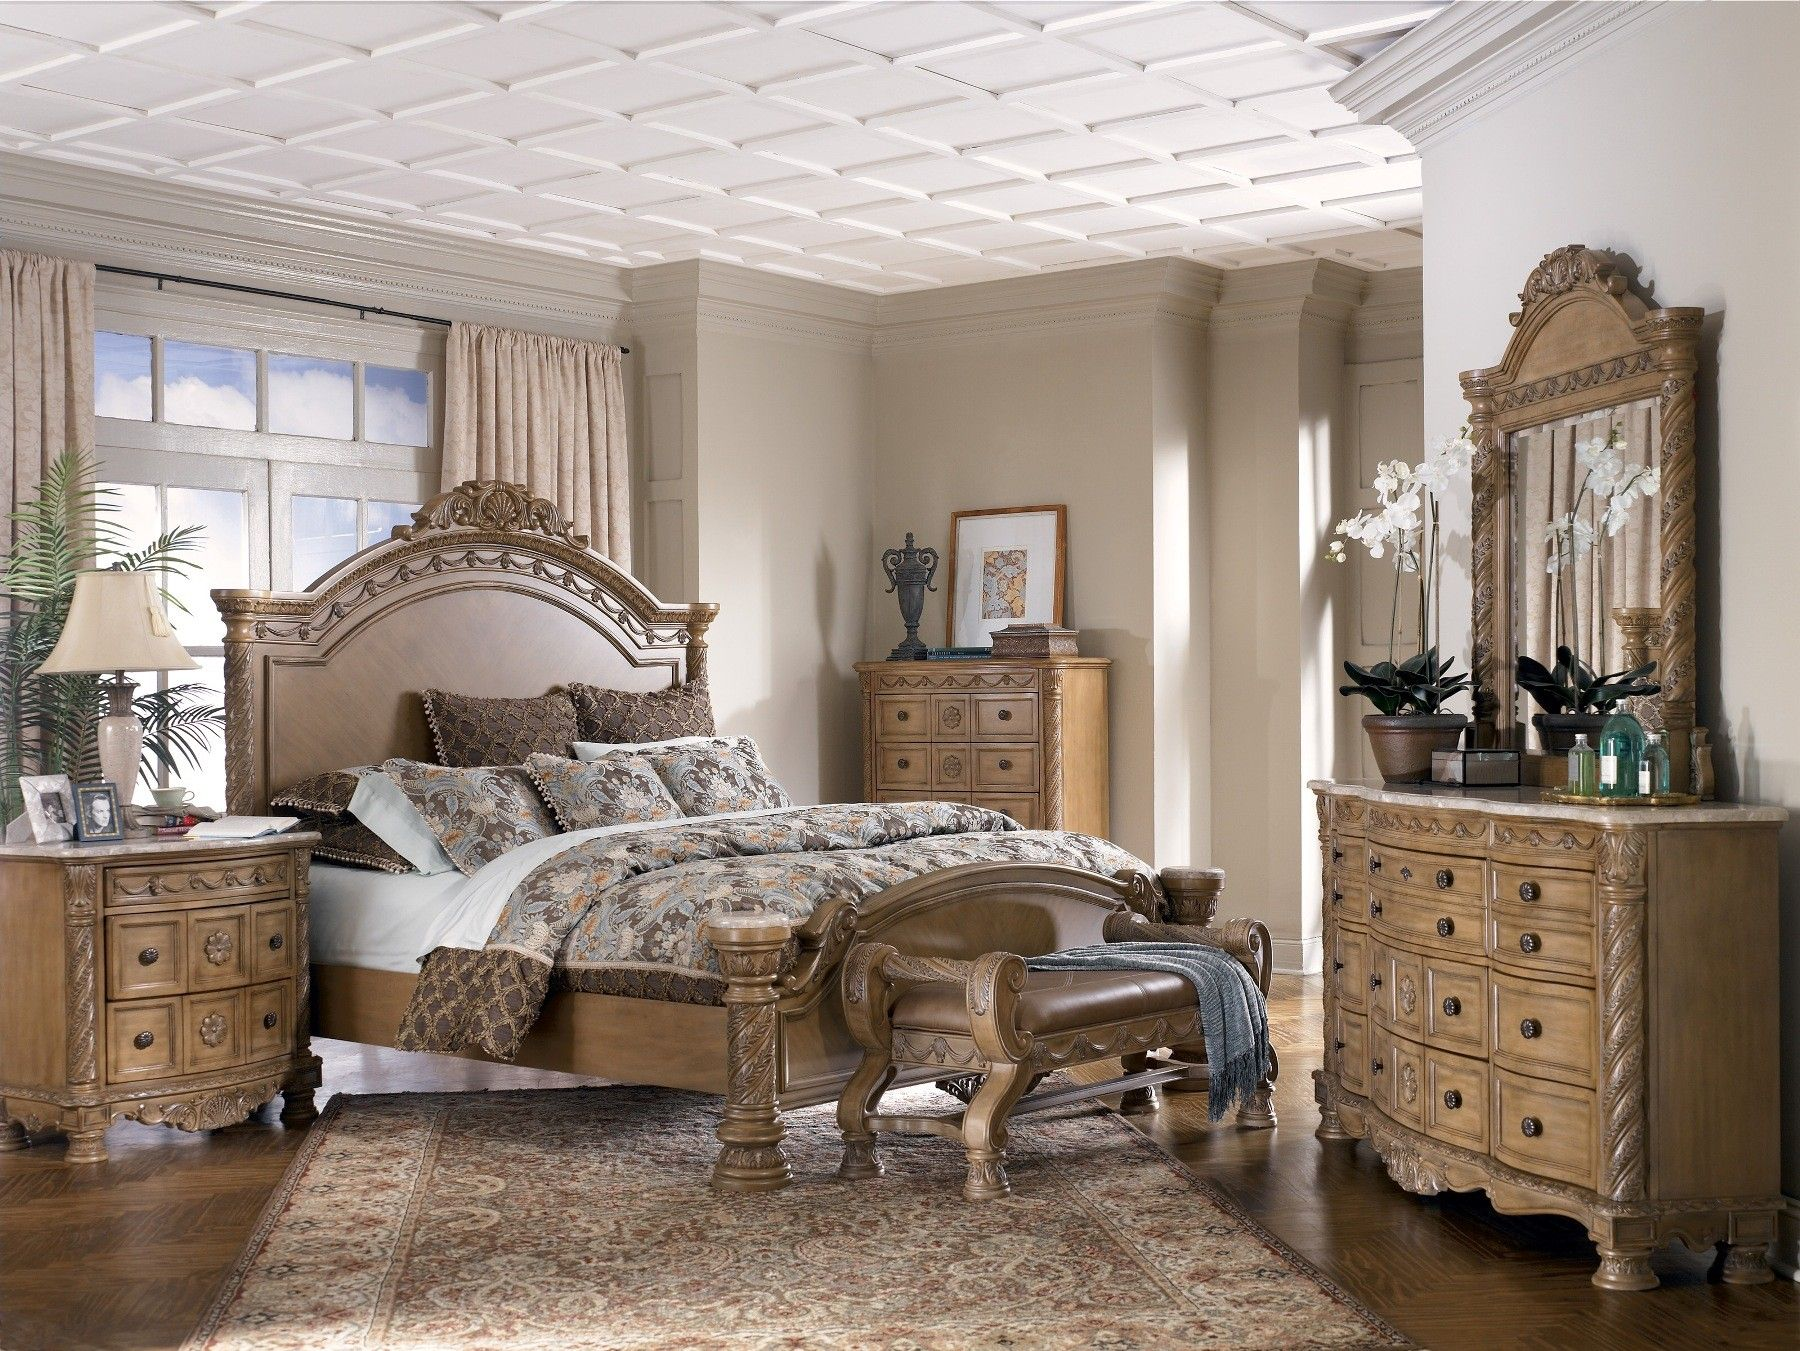 Living Room And Bedroom Furniture Sets Ashley Furniture Gallery Ashley Furniture South Coast Panel